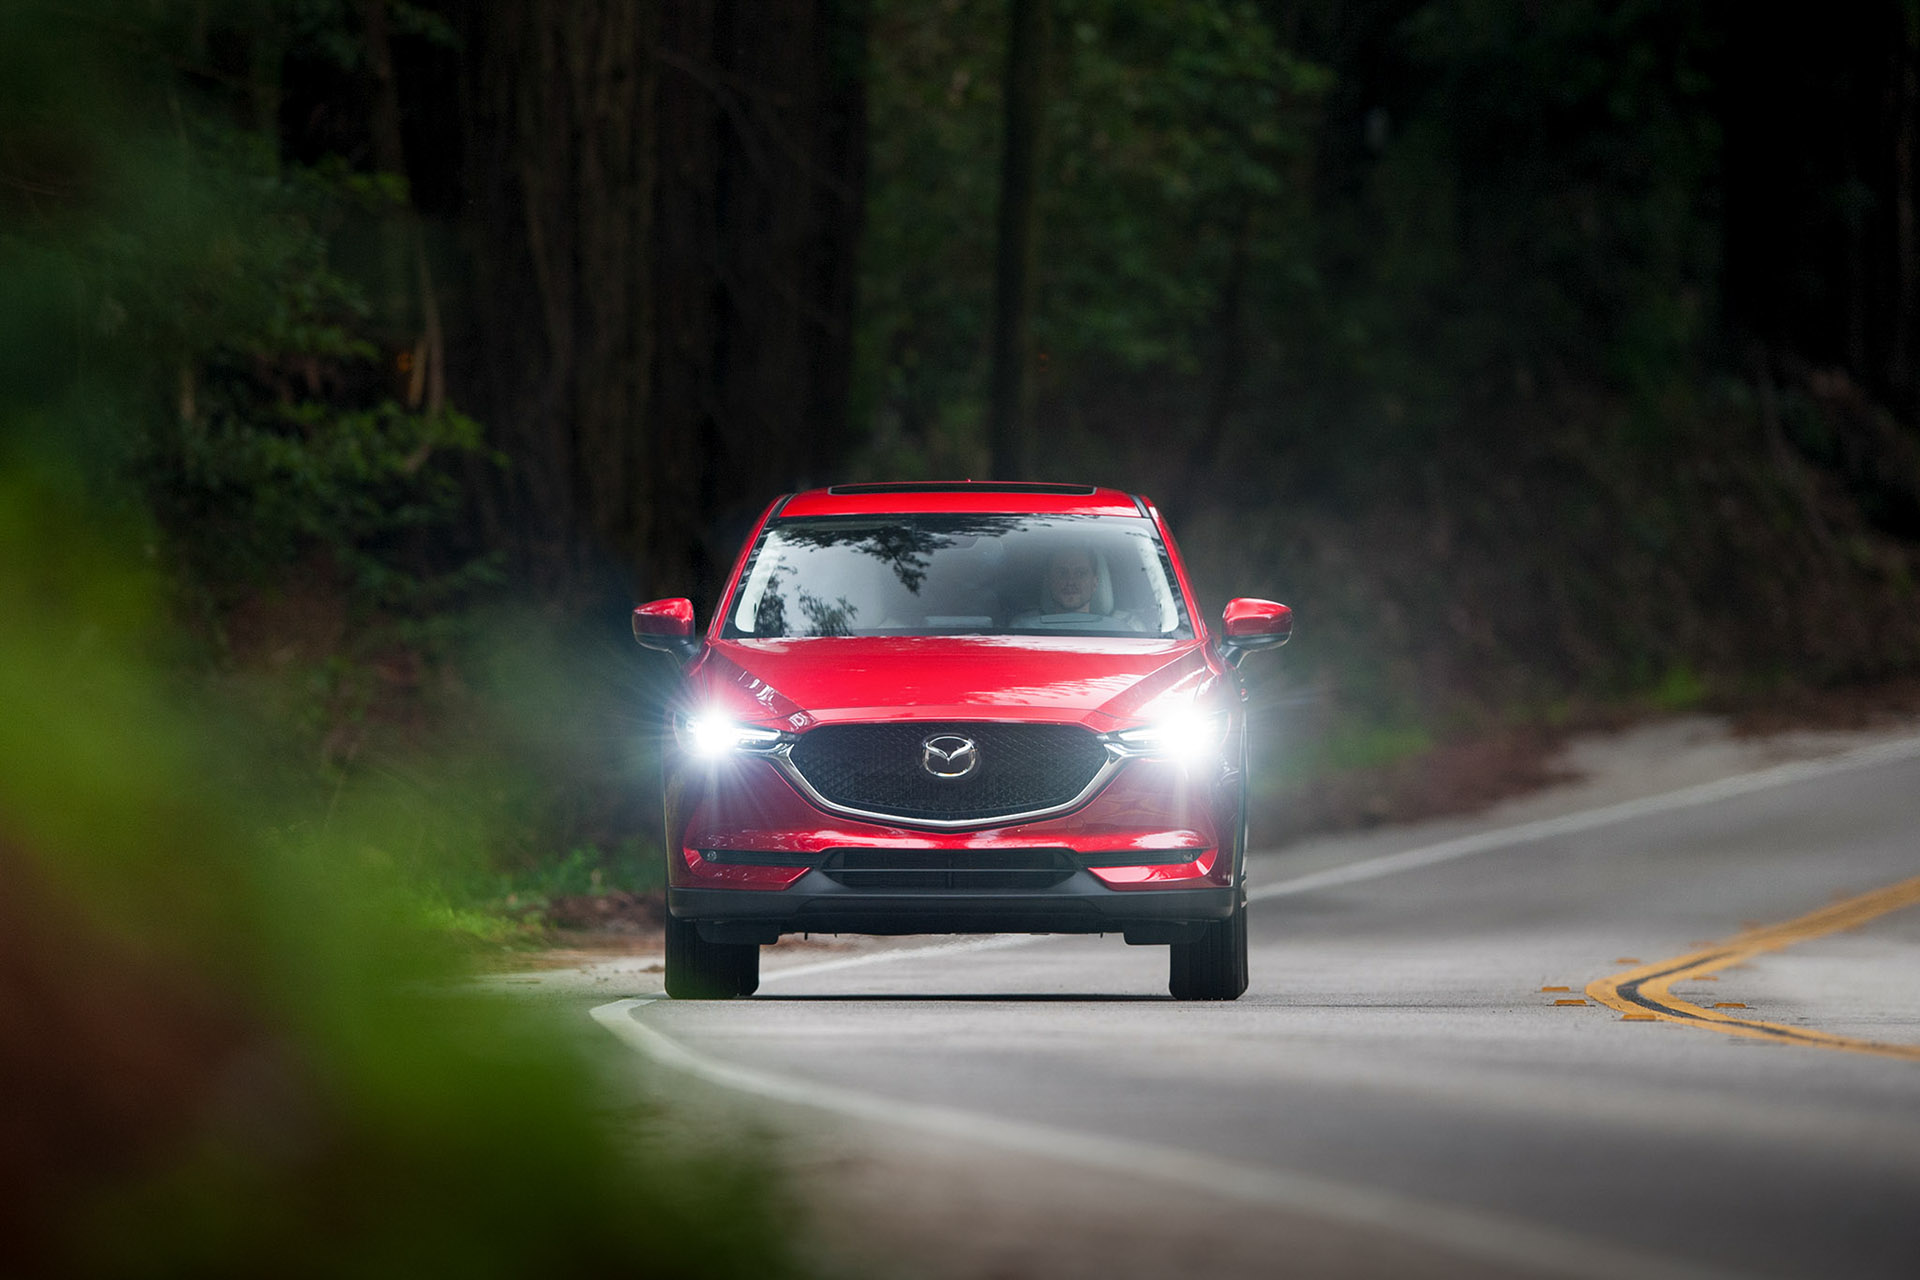 Luke Munnell automotive photography Soul Red Mazda CX-5 front driving headlights on